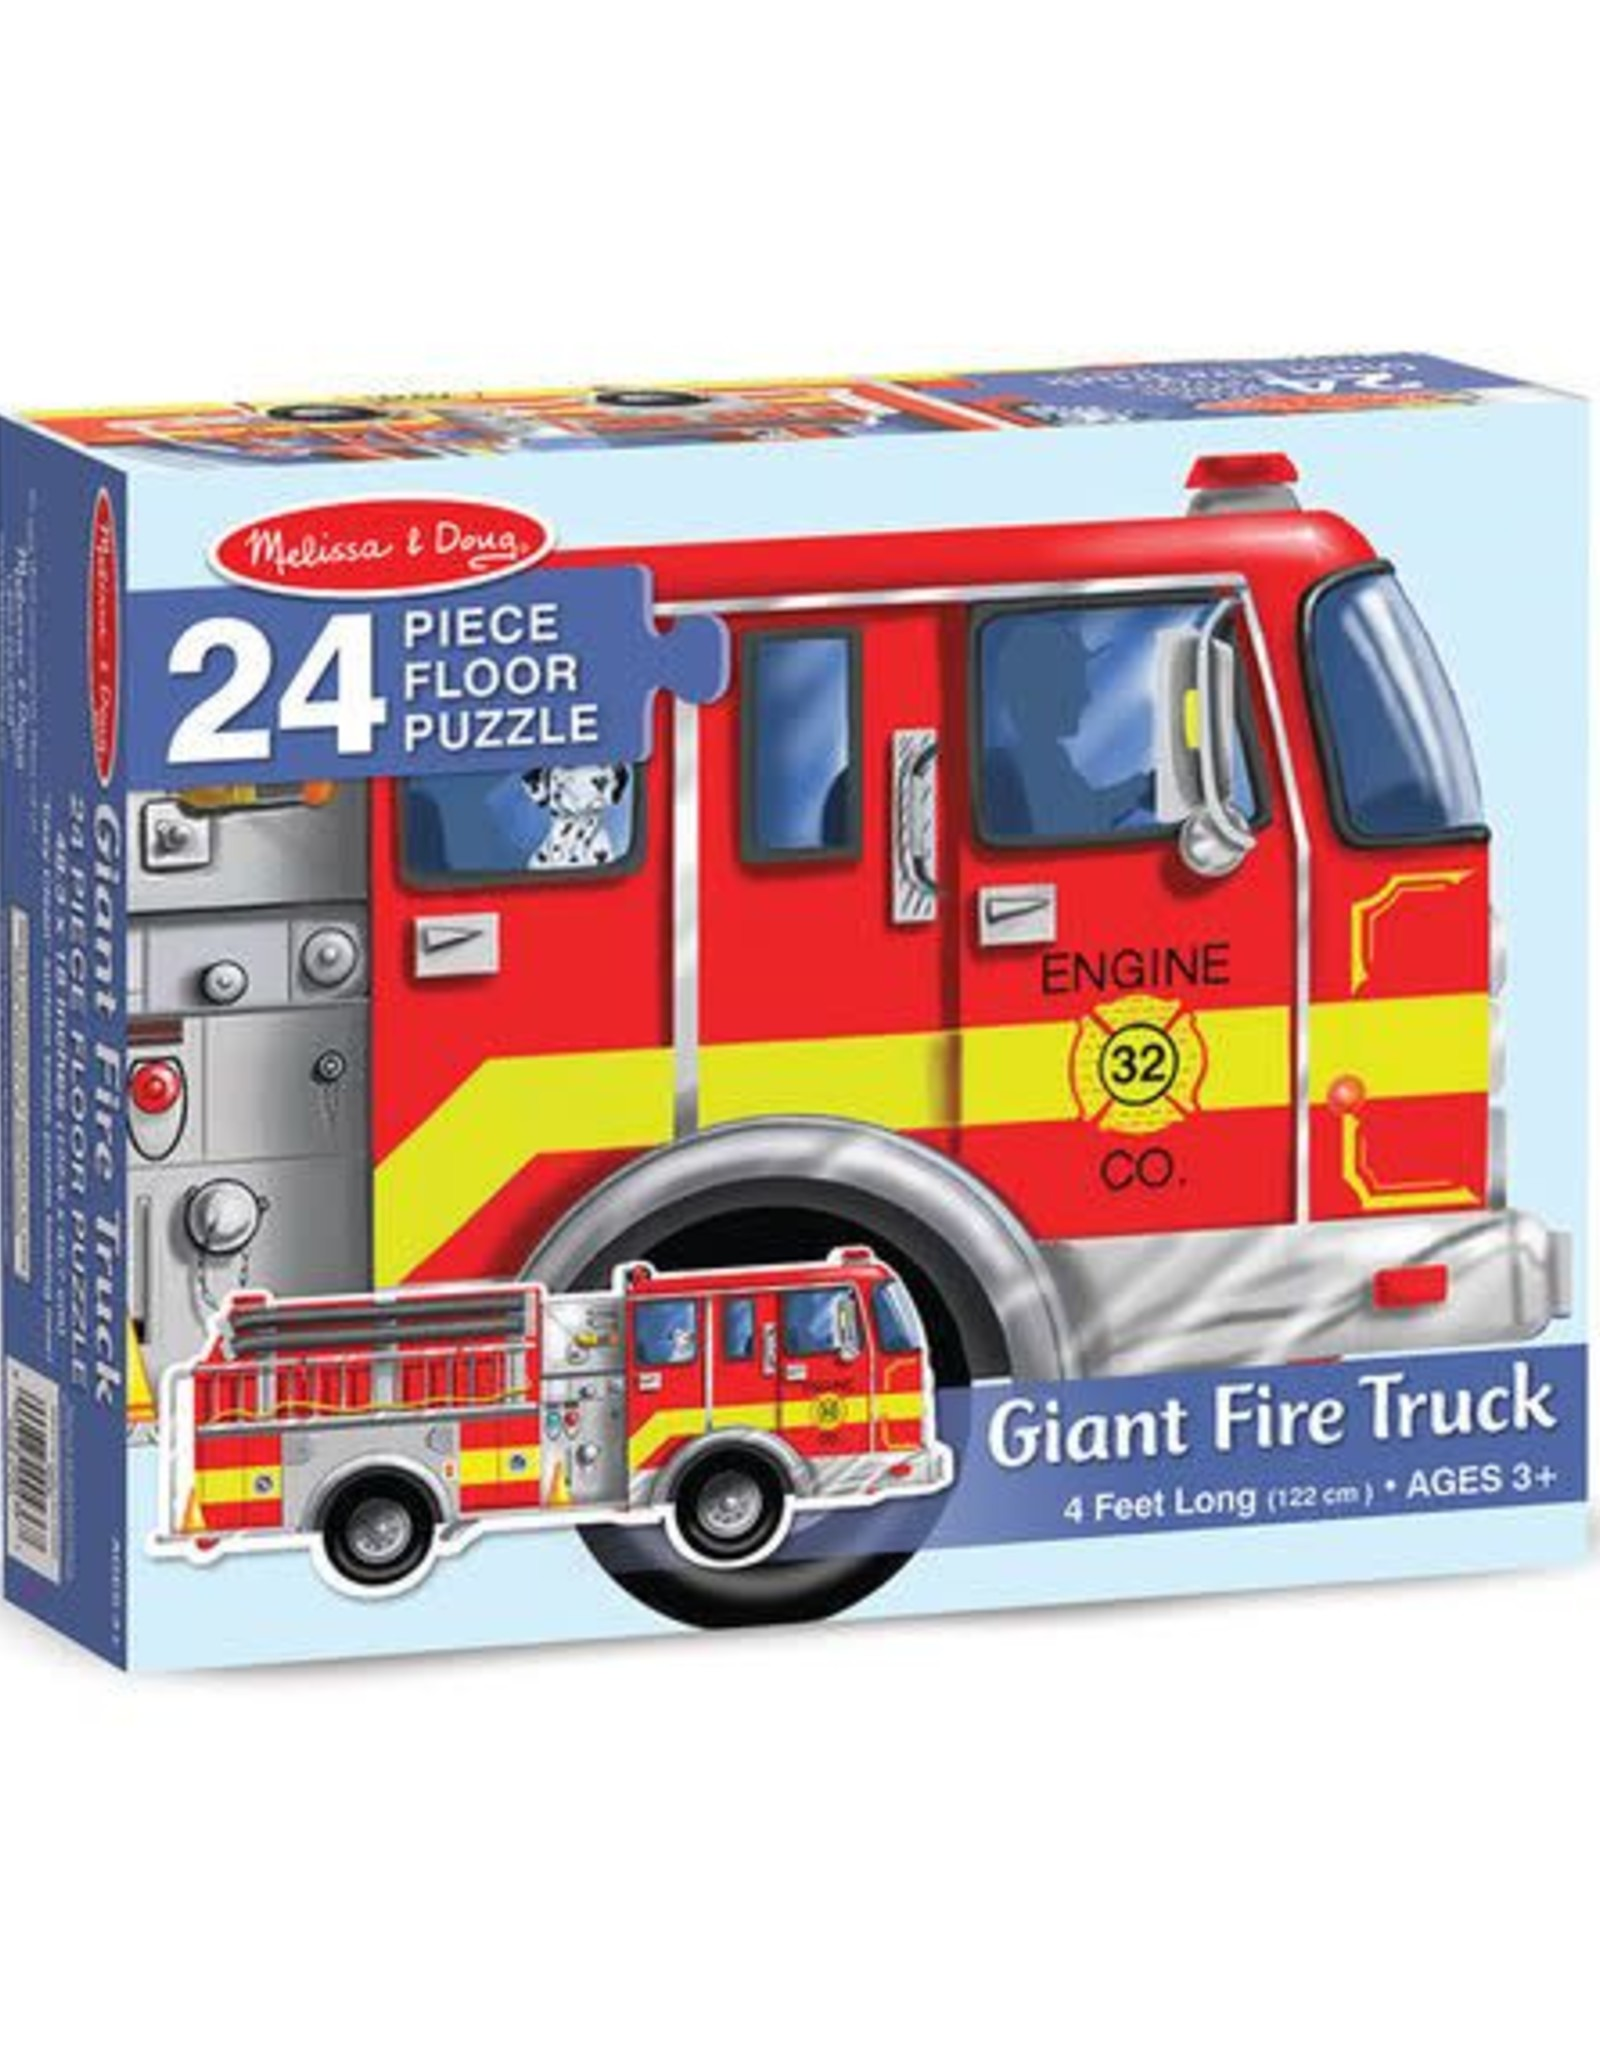 Melissa & Doug Giant Fire Truck 24pc Floor Puzzle